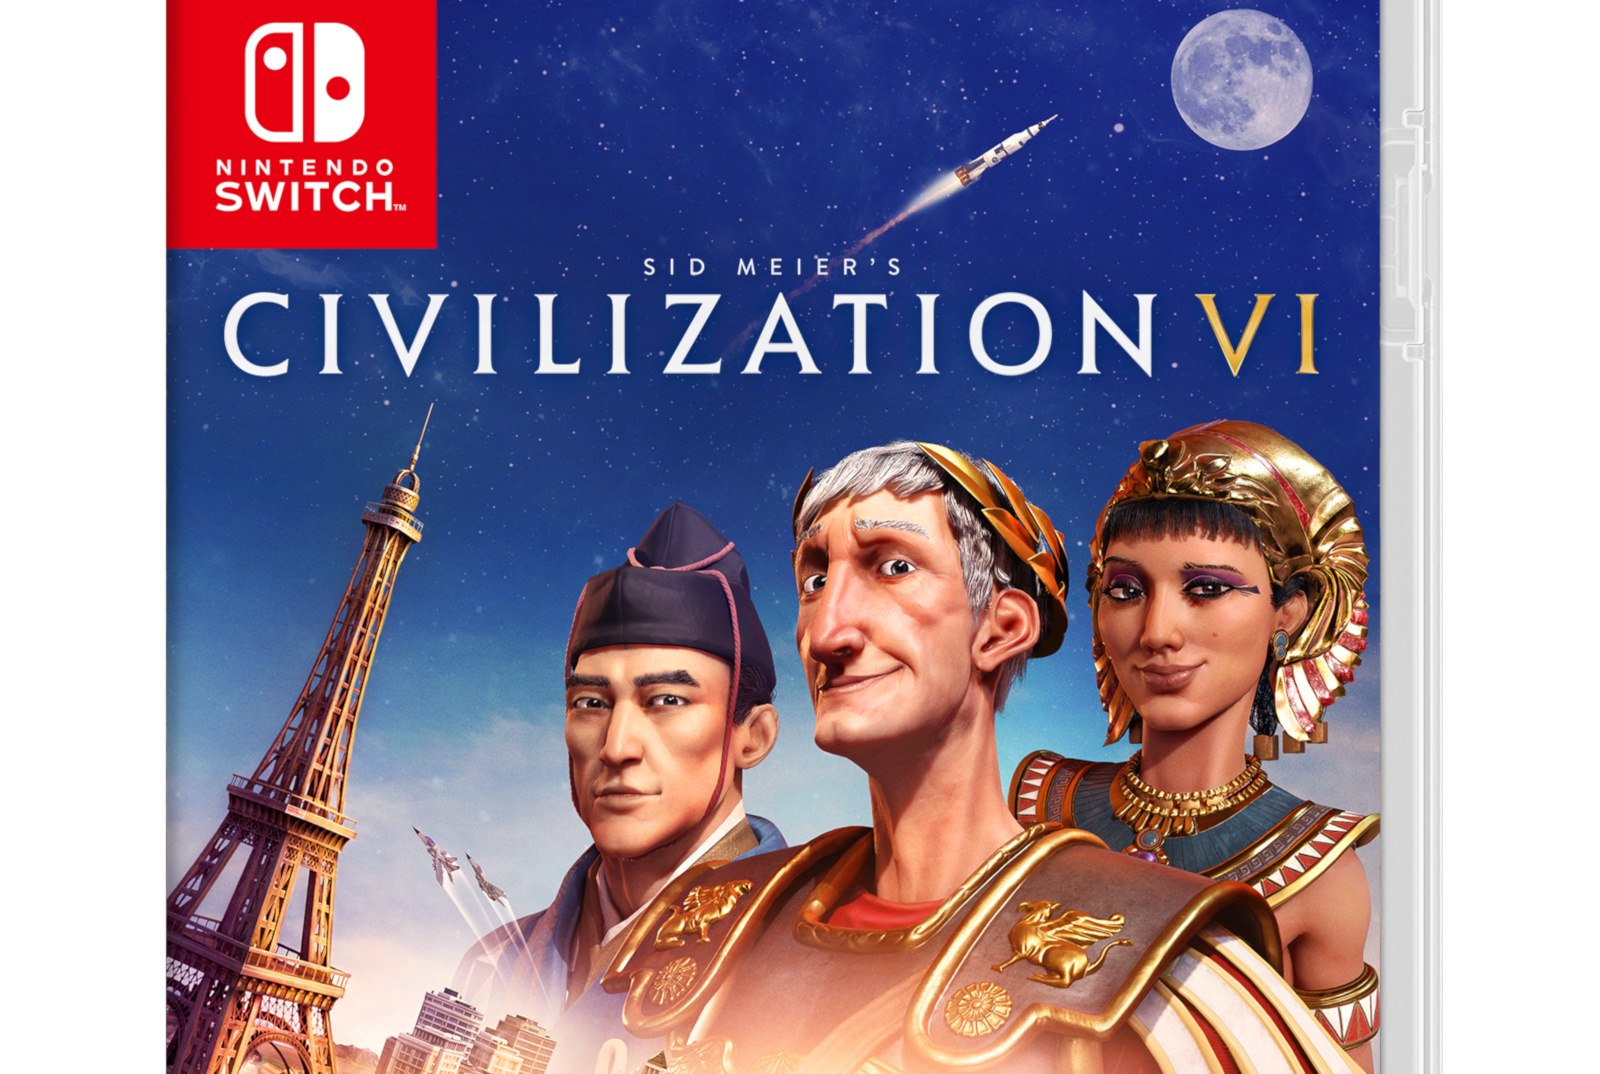 Watch the 'Civilization VI' trailer for Nintendo Switch